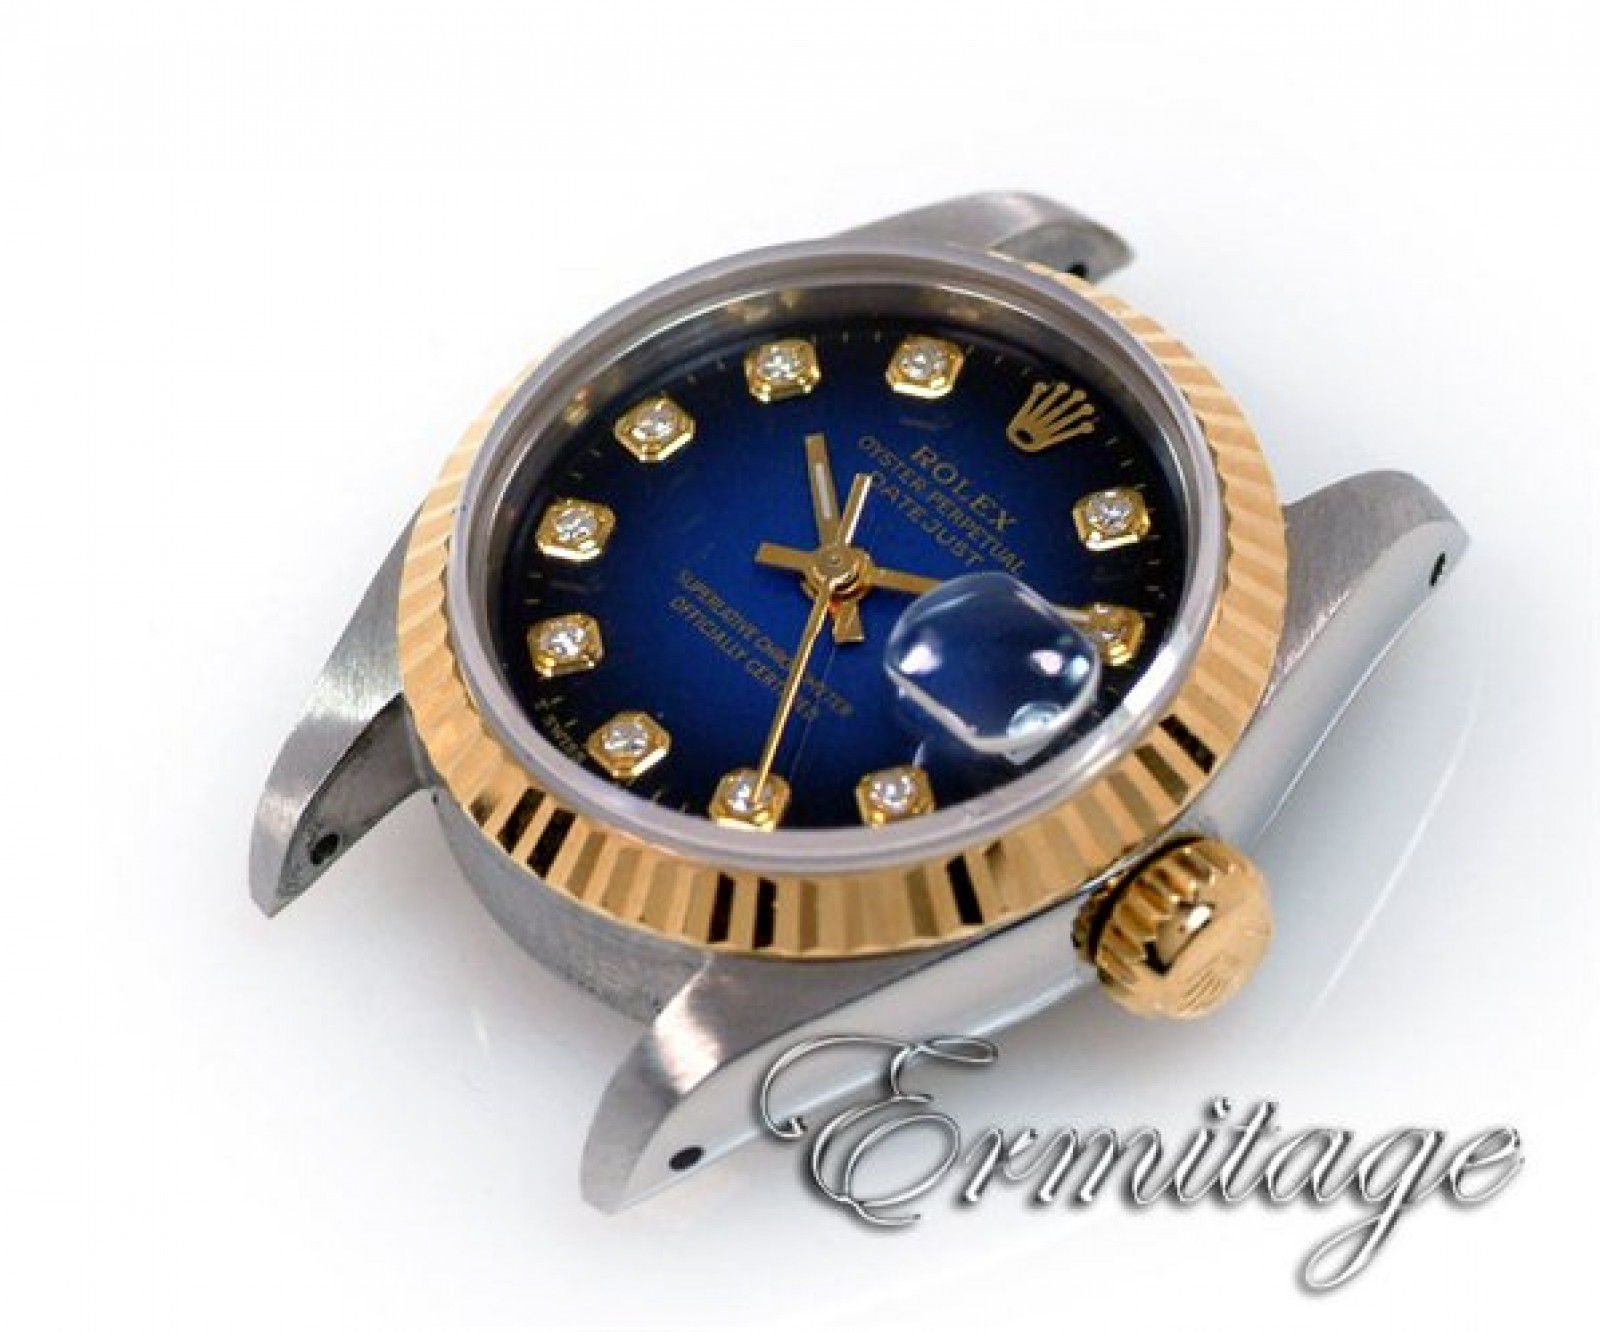 Rolex Datejust 69173 with Diamonds on Blue Dial